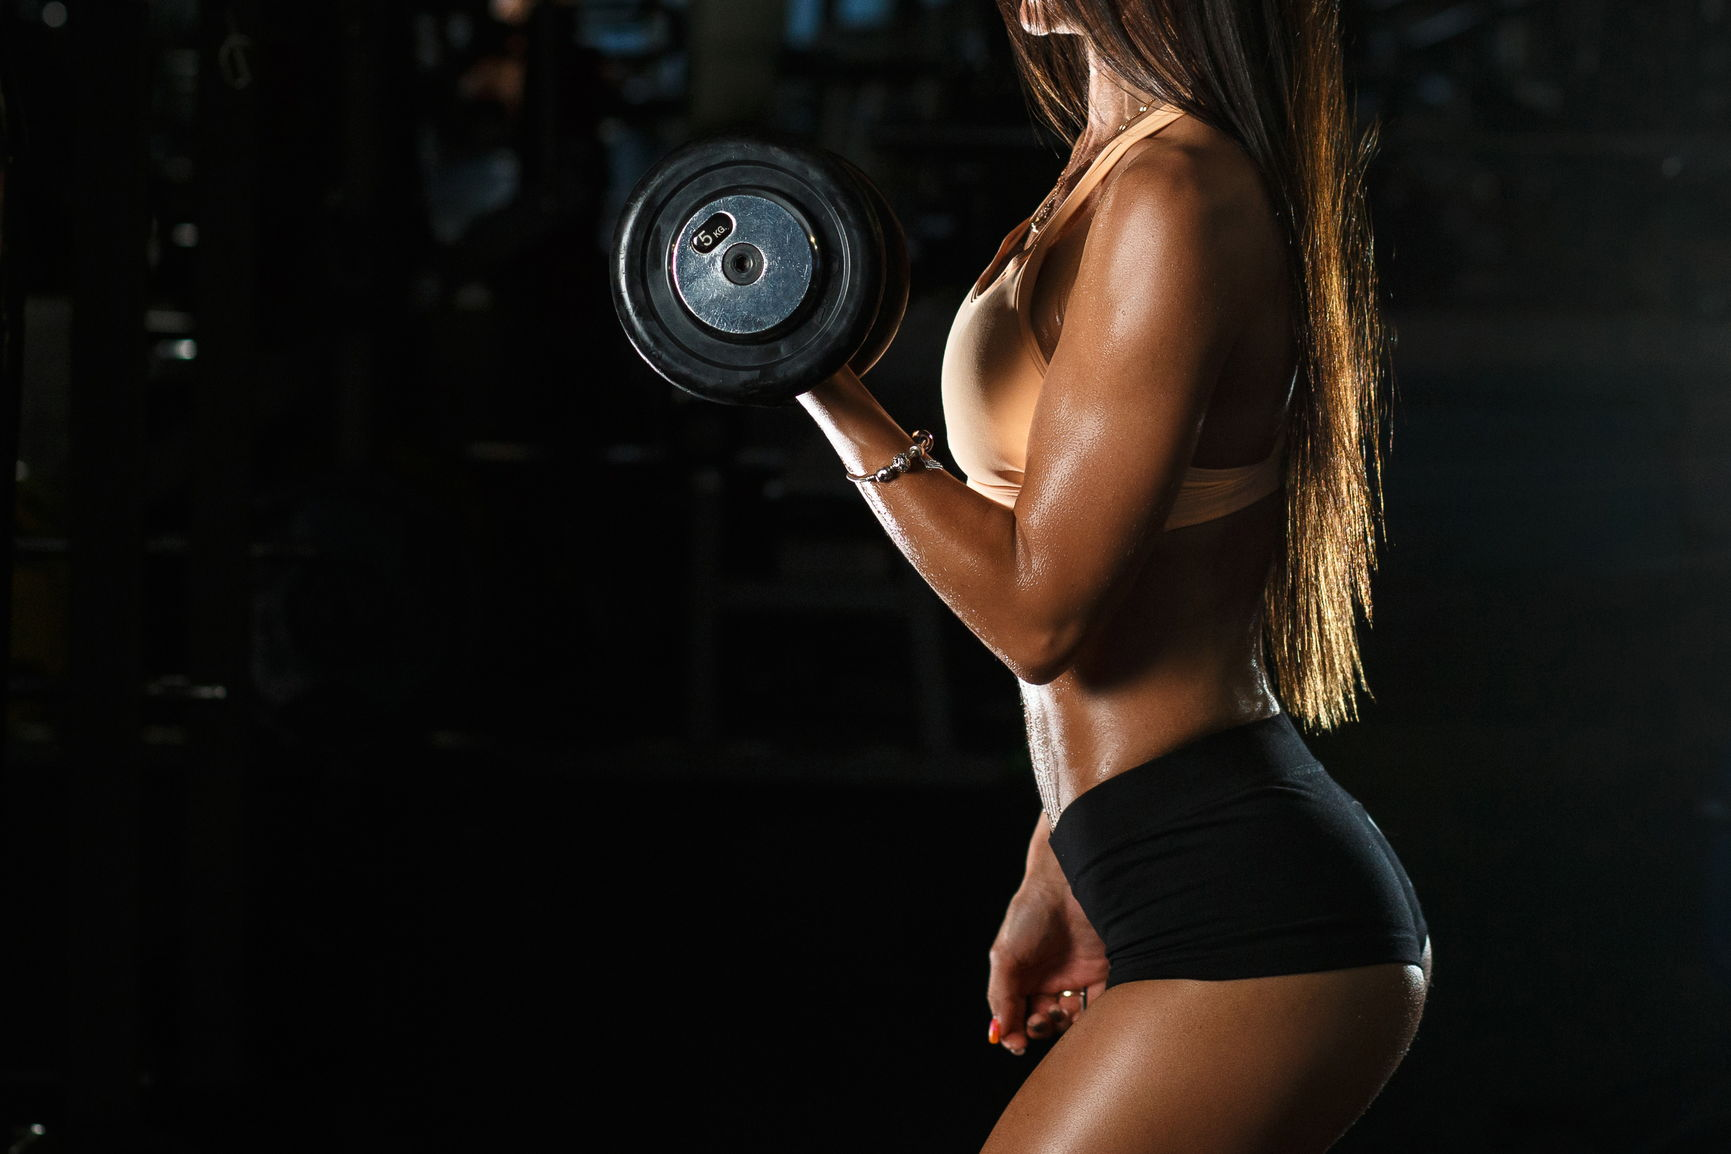 increase metabolism and lose weight by increasing muscle mass